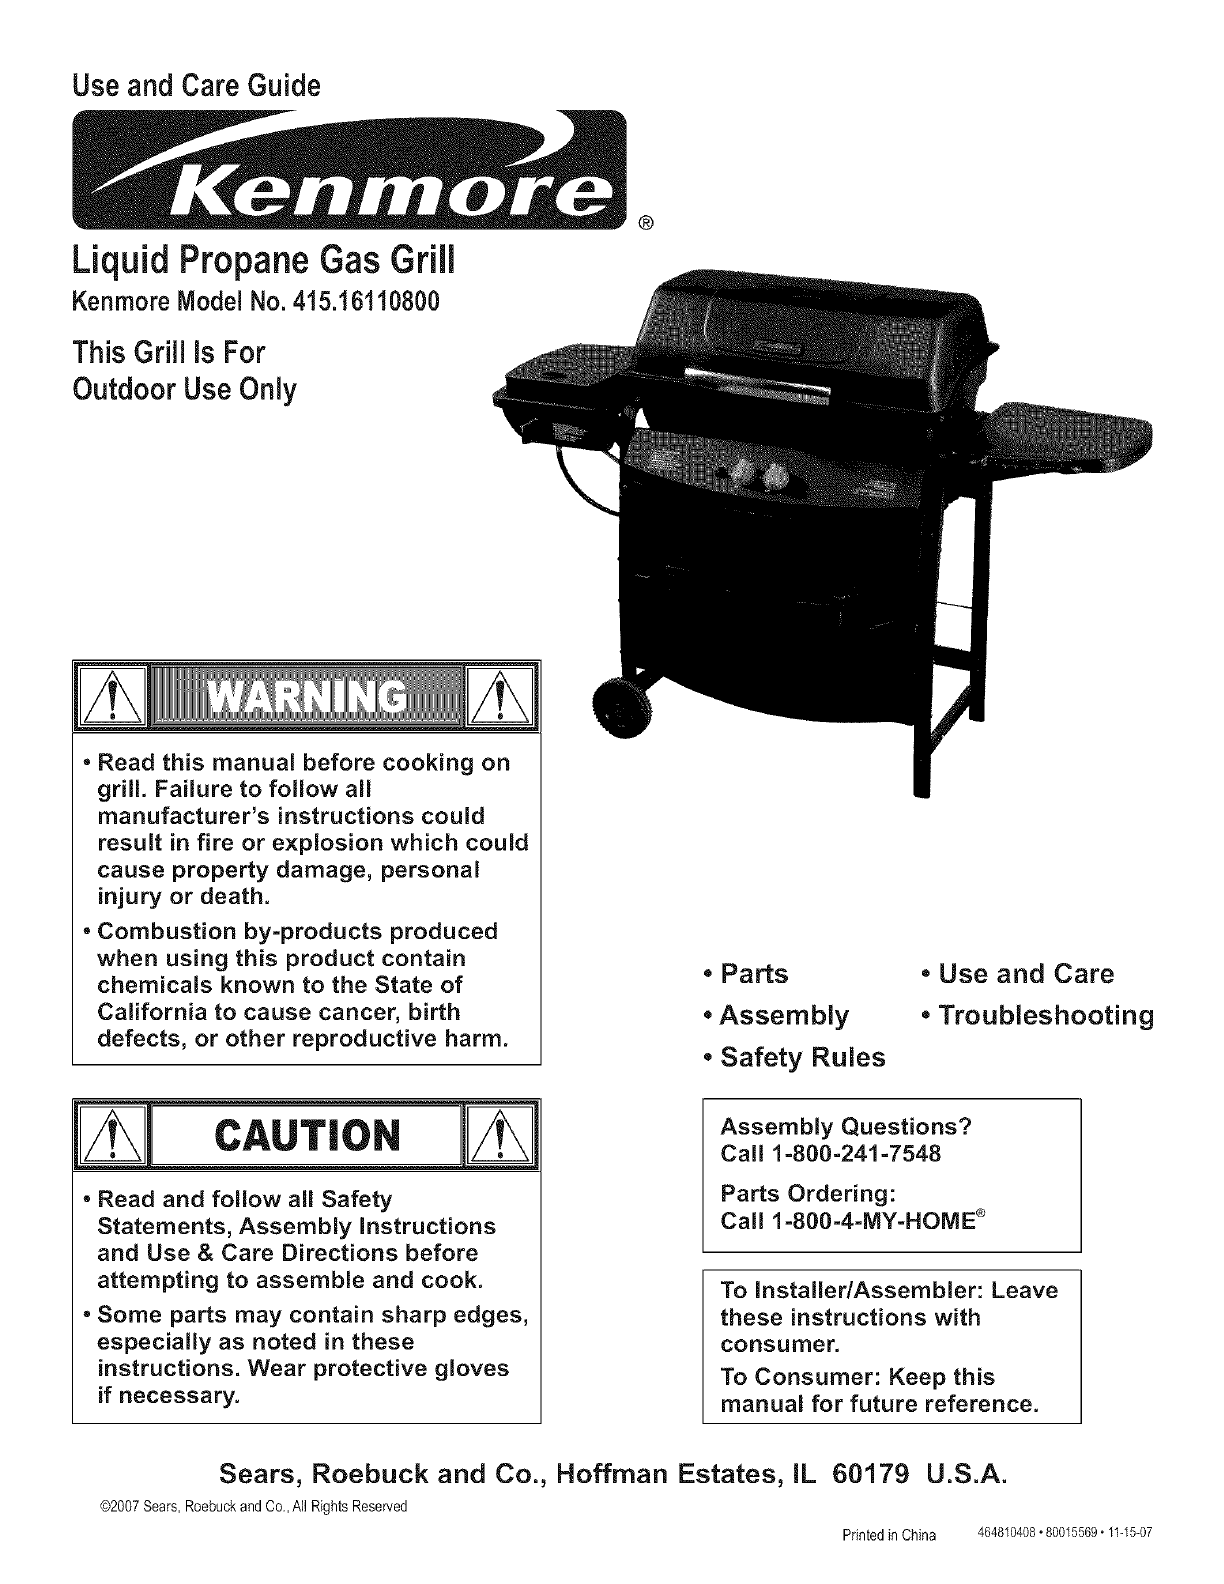 kenmore gas grill. kenmore gas grill